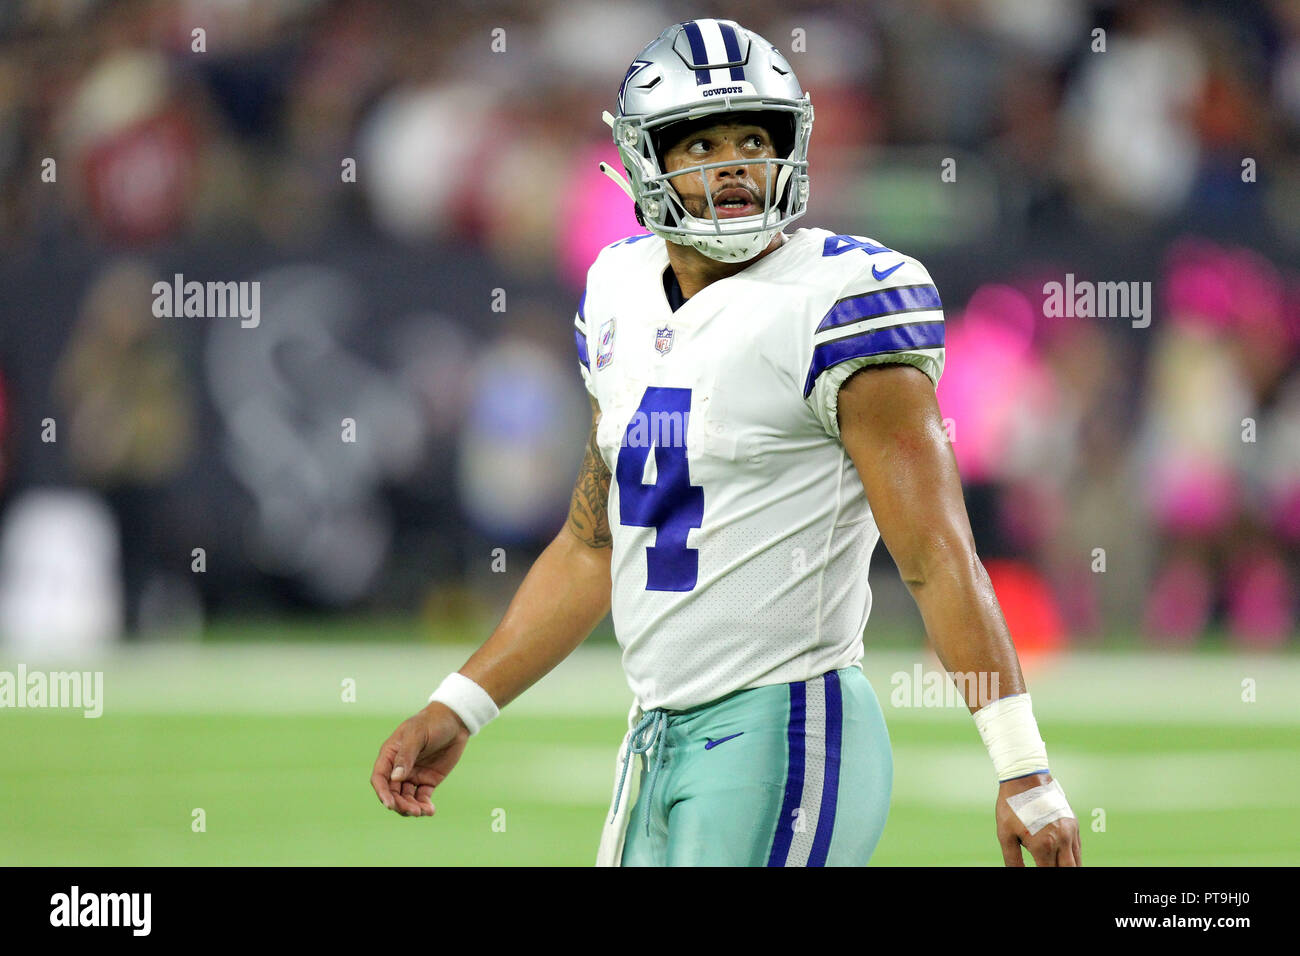 Dallas Cowboys quarterback Dak Prescott (4) walks to the sideline after  calling timeout during the fourth quarter of the NFL regular season game  between the ... 7db6007f9